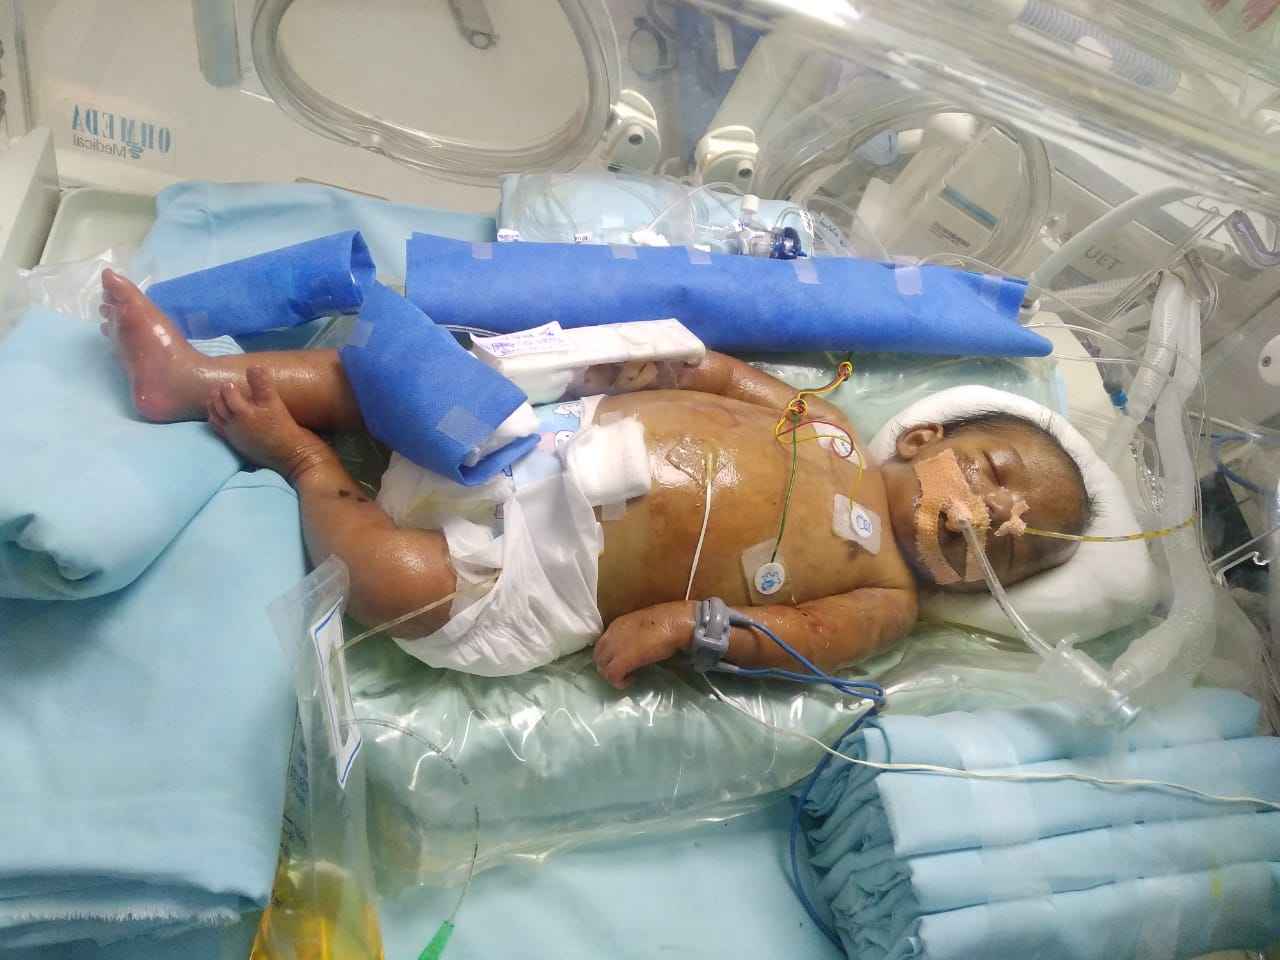 16days baby suffering with severe sepsis